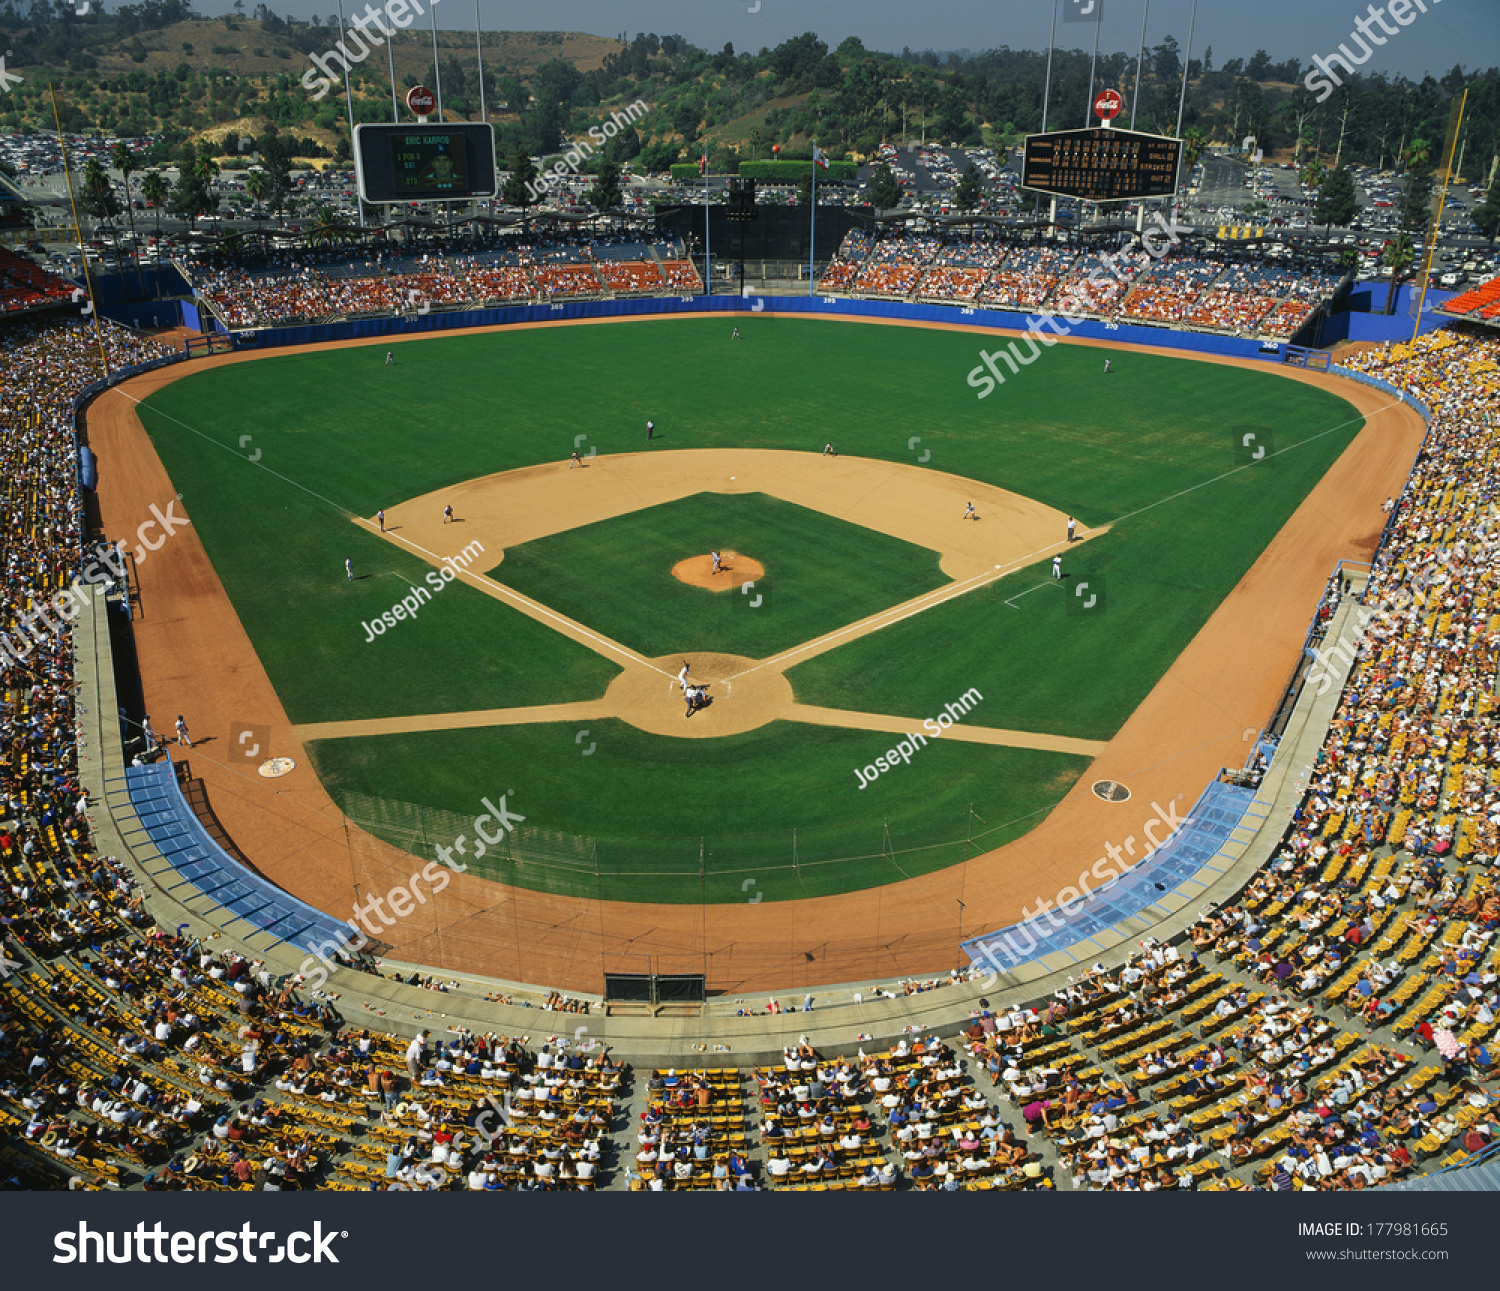 This dodger stadium this game played stock photo 177981665 this is dodger stadium this game was played by the la dodgers and the houston buycottarizona Image collections